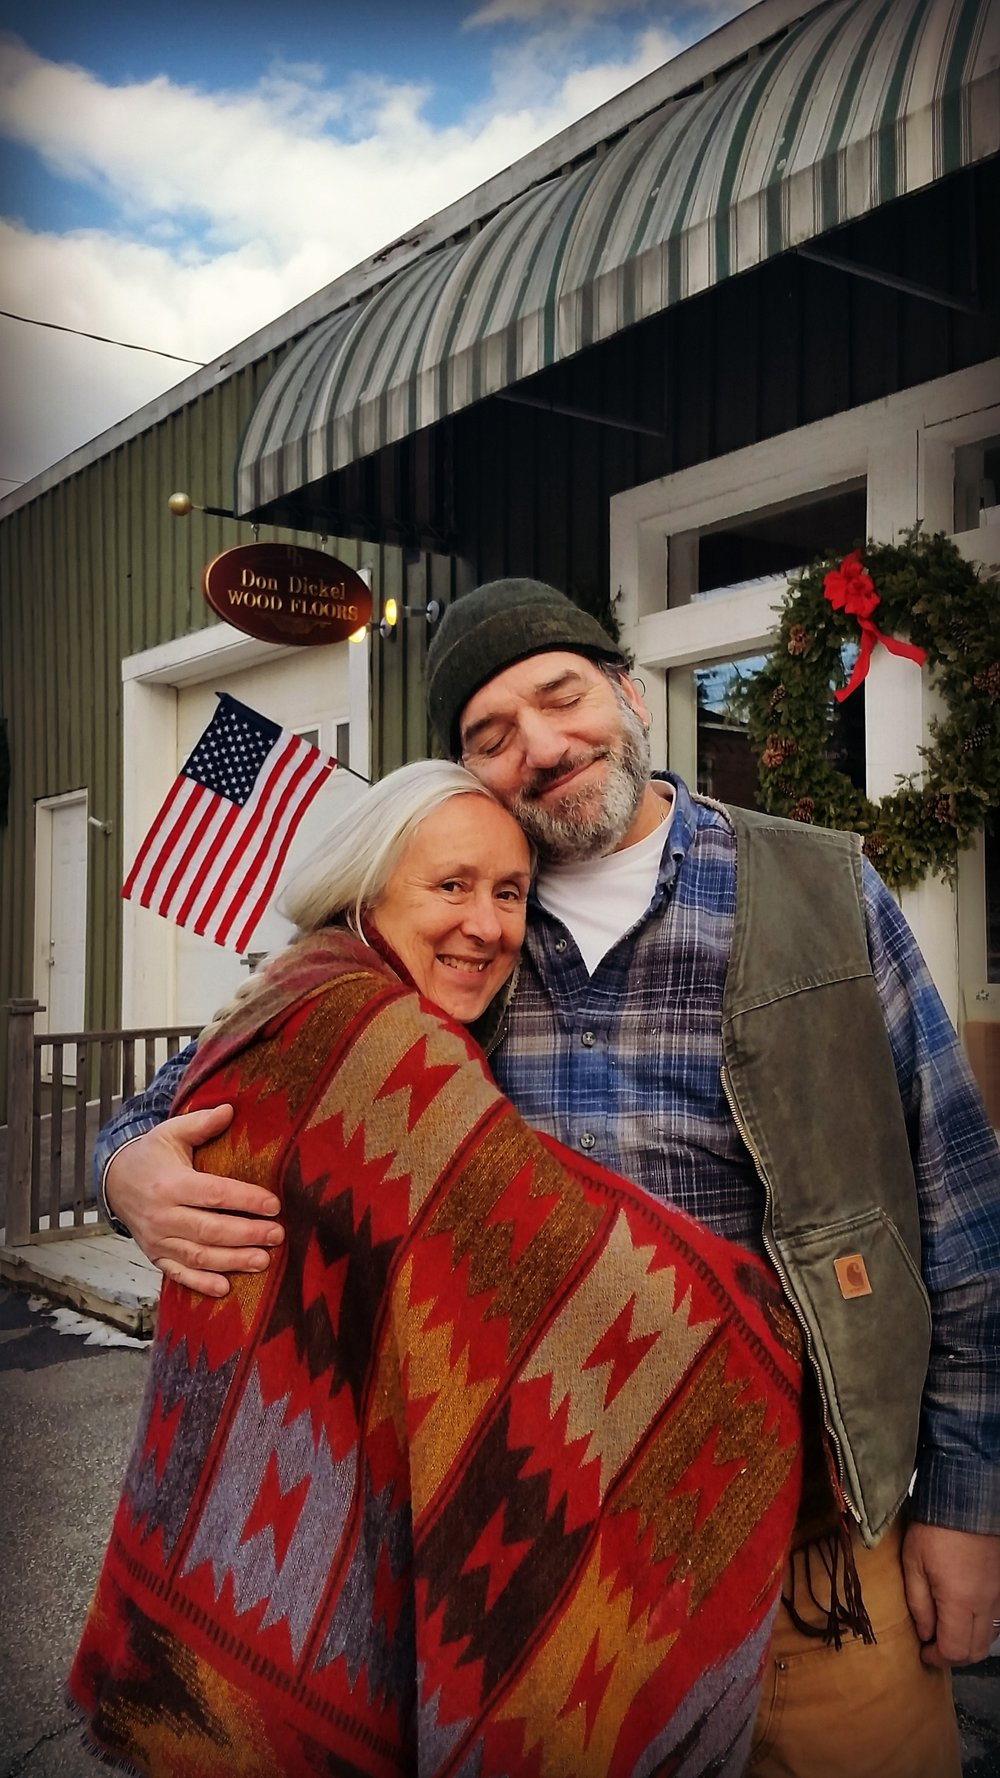 Rebecca & Z photographed in front of Z's workshop/showroom in Winterport, Maine.